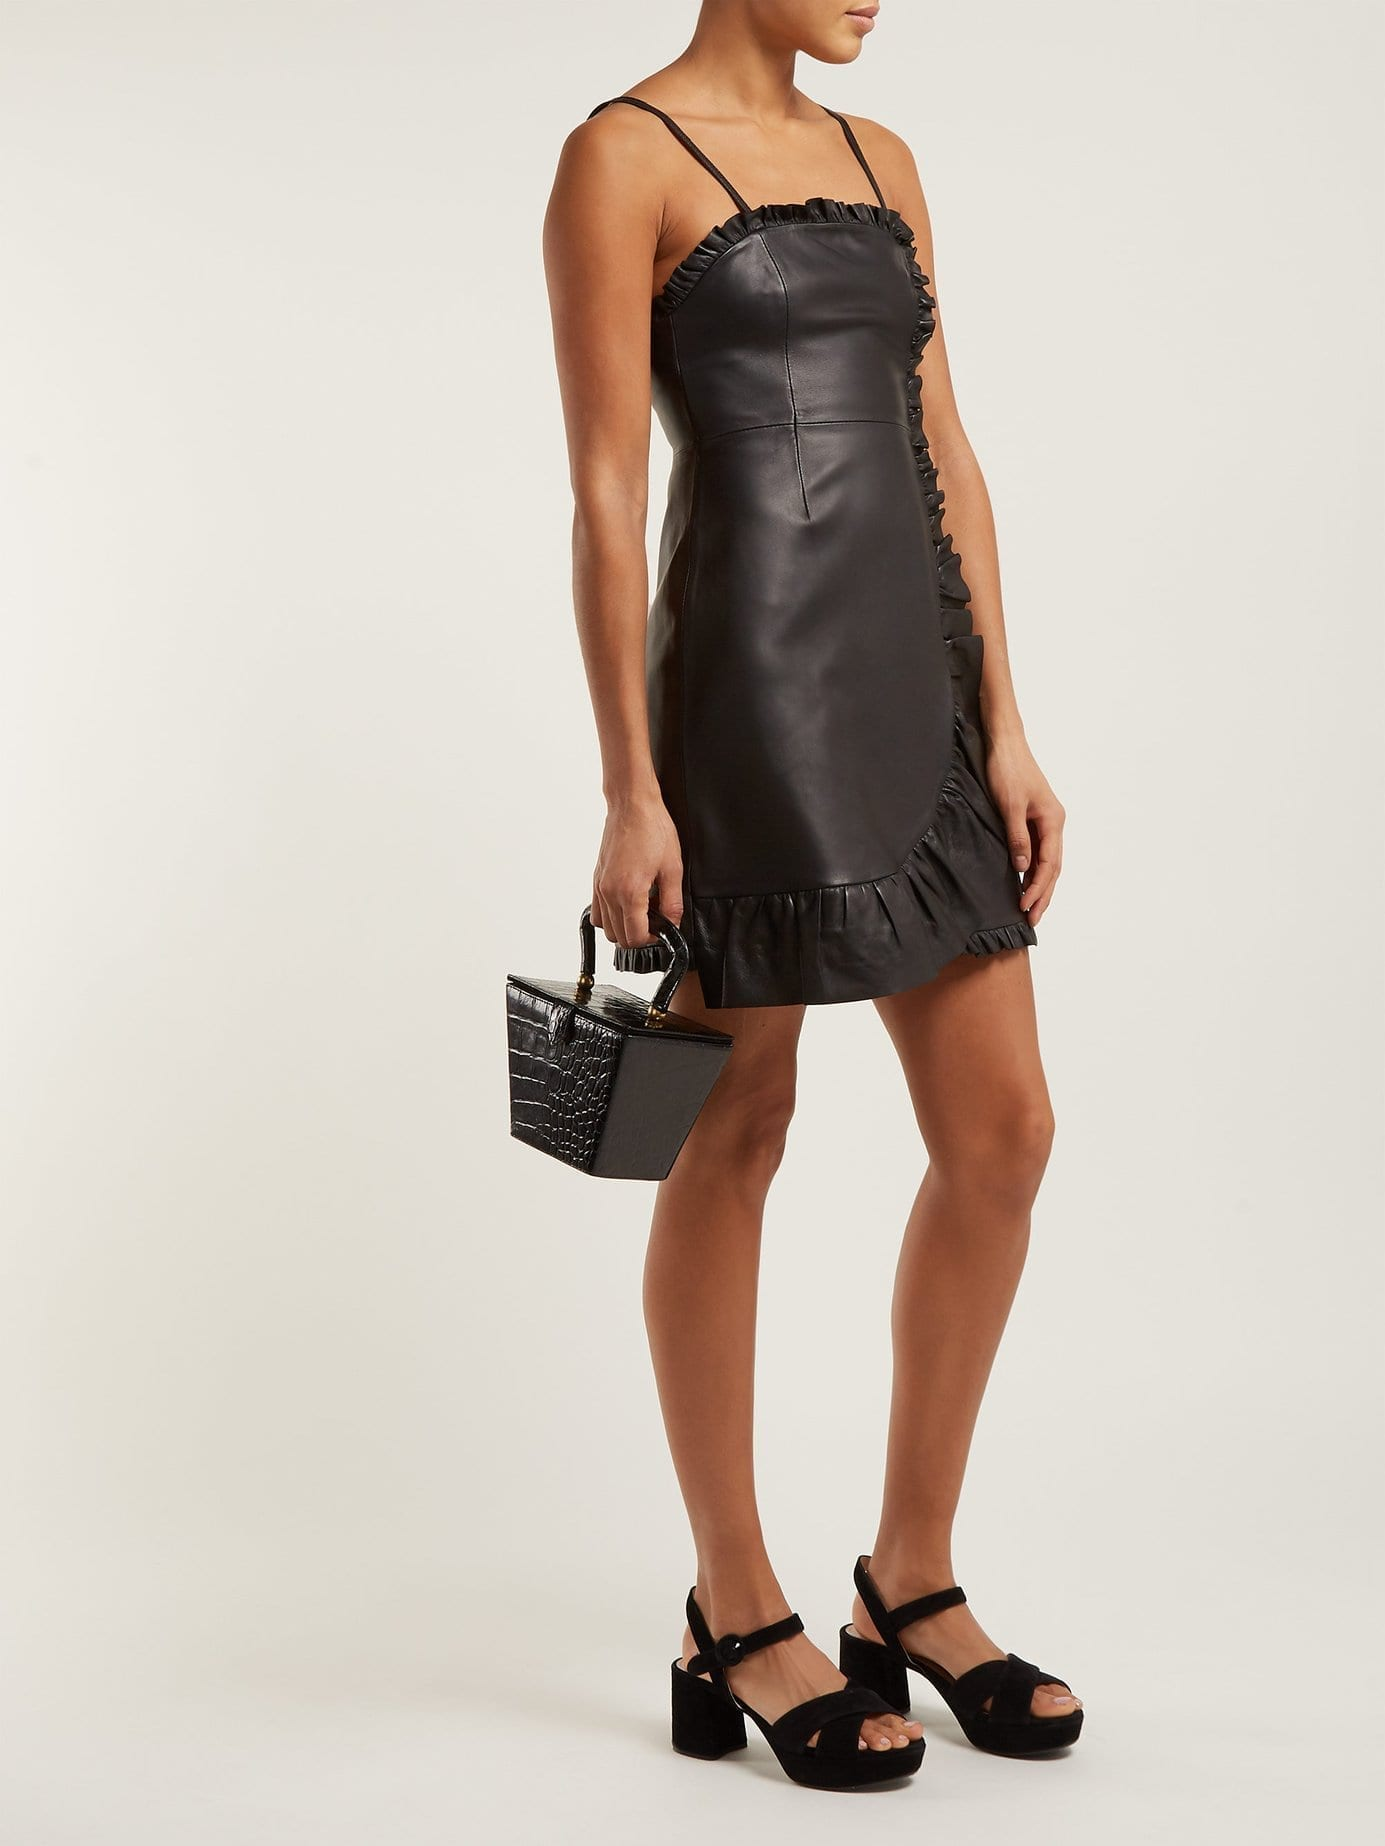 ALEXACHUNG Ruffle-trimmed Leather Mini Black Dress